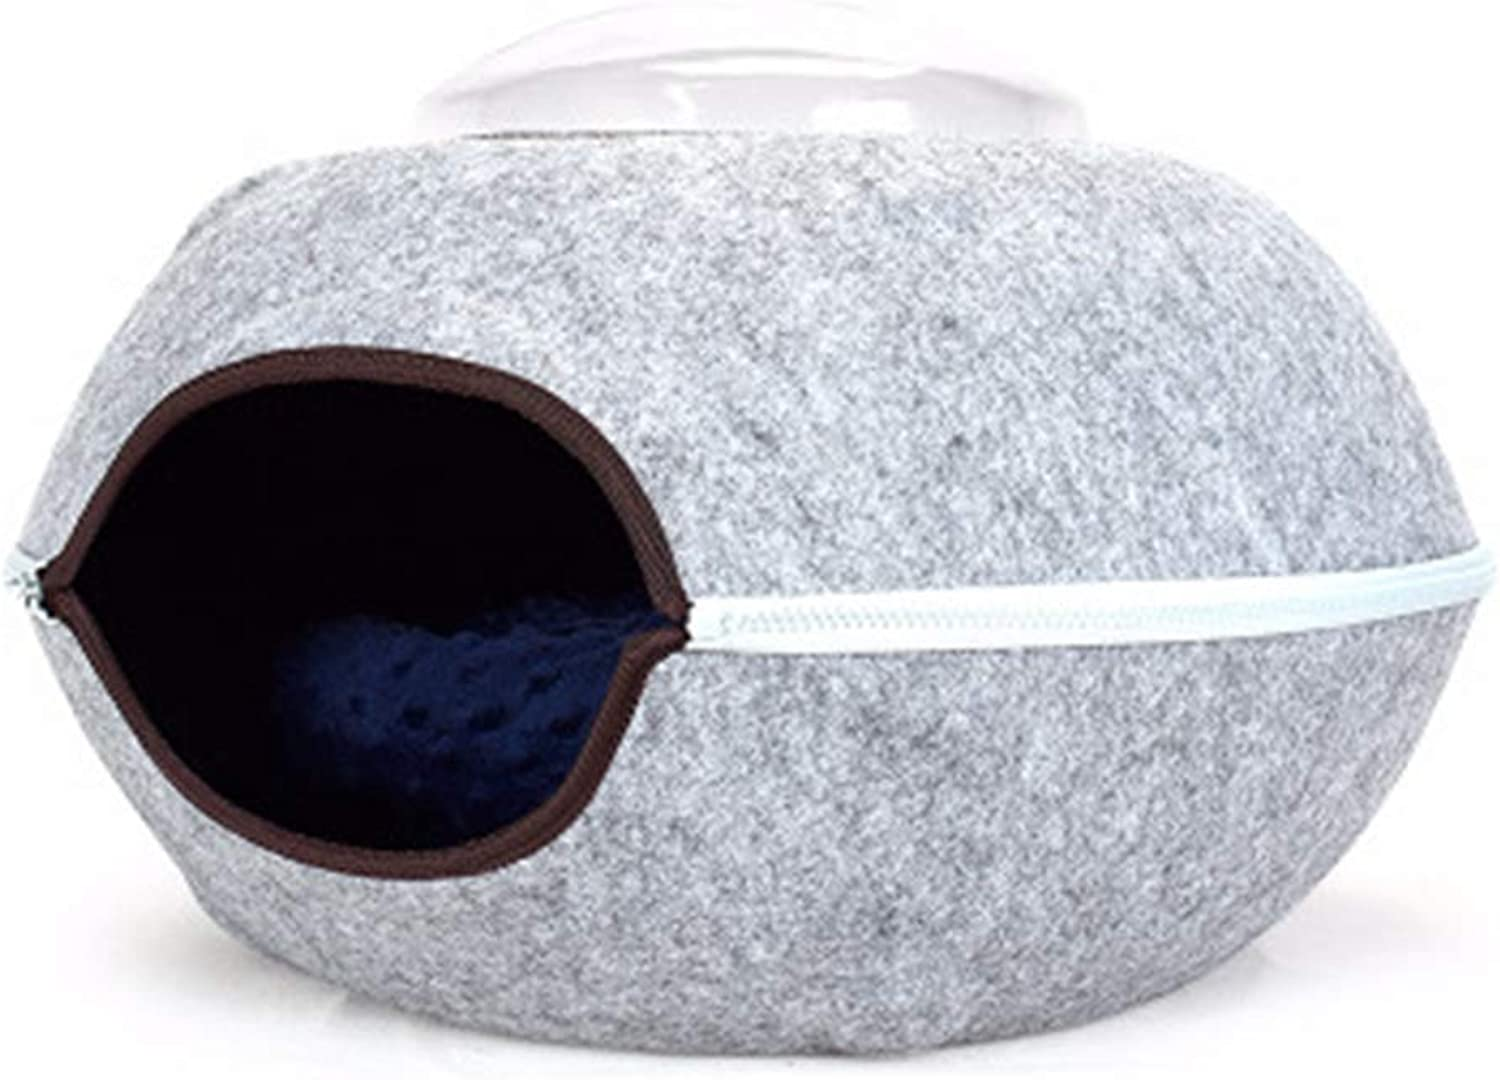 AosyGFR Pet Supplies Cat Bed Small Dog Pet Nest Pet Bed Felt Cat Litter